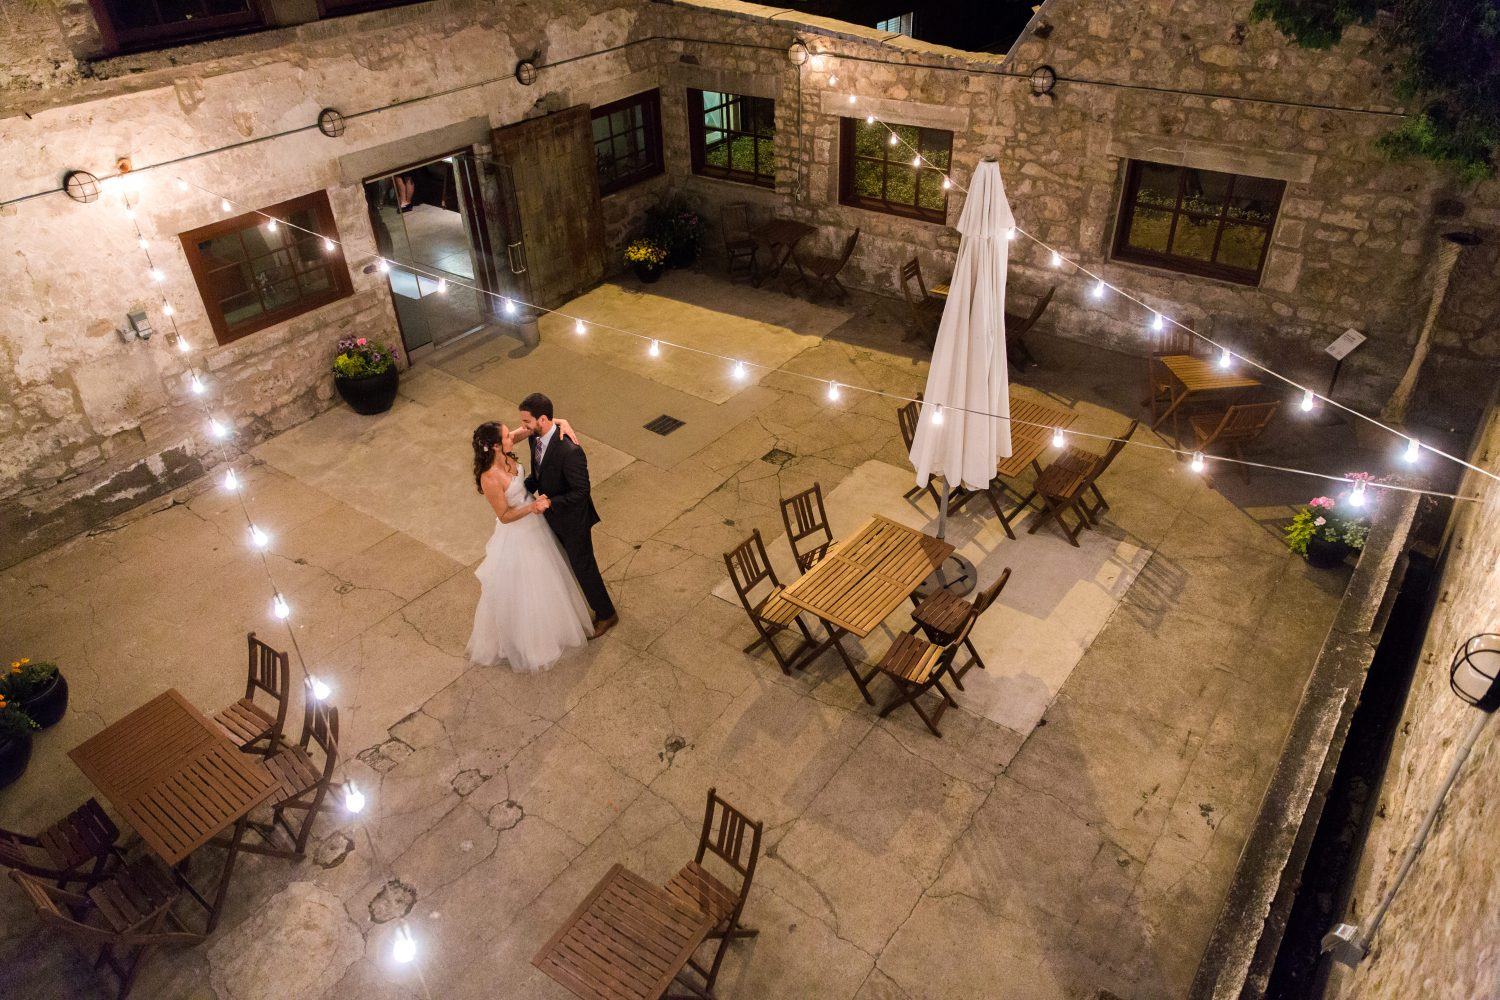 Bride and groom dancing alone in the courtyard at Alton Mill